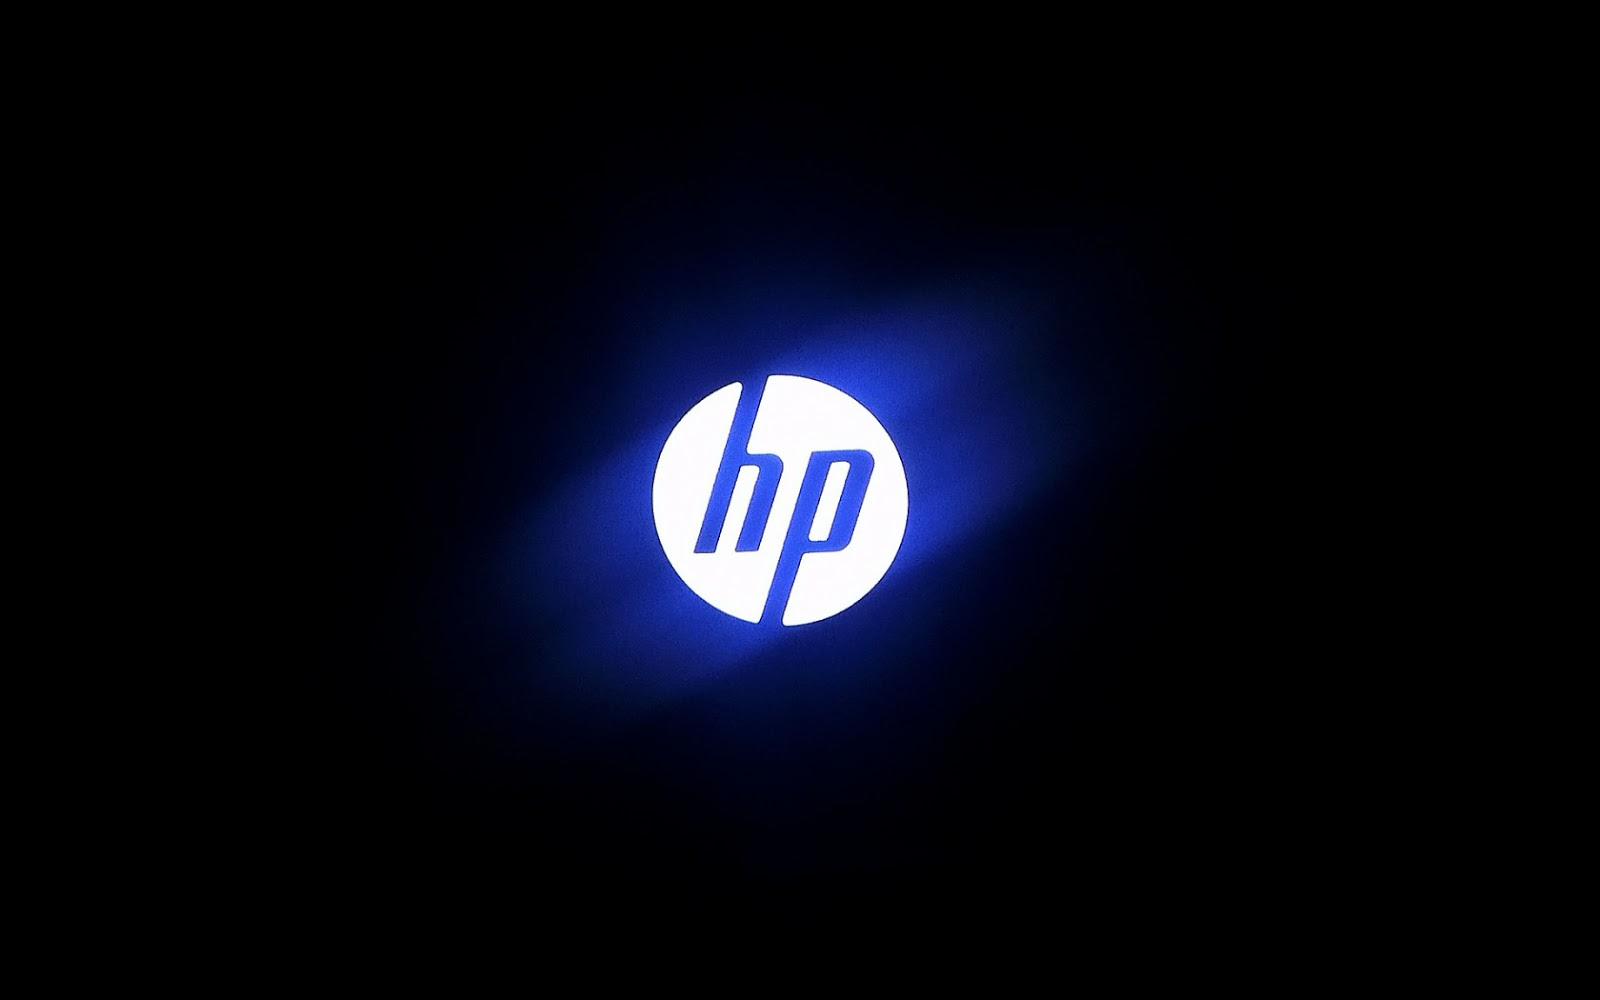 hp wallpapers hd 1080p wallpapersafari